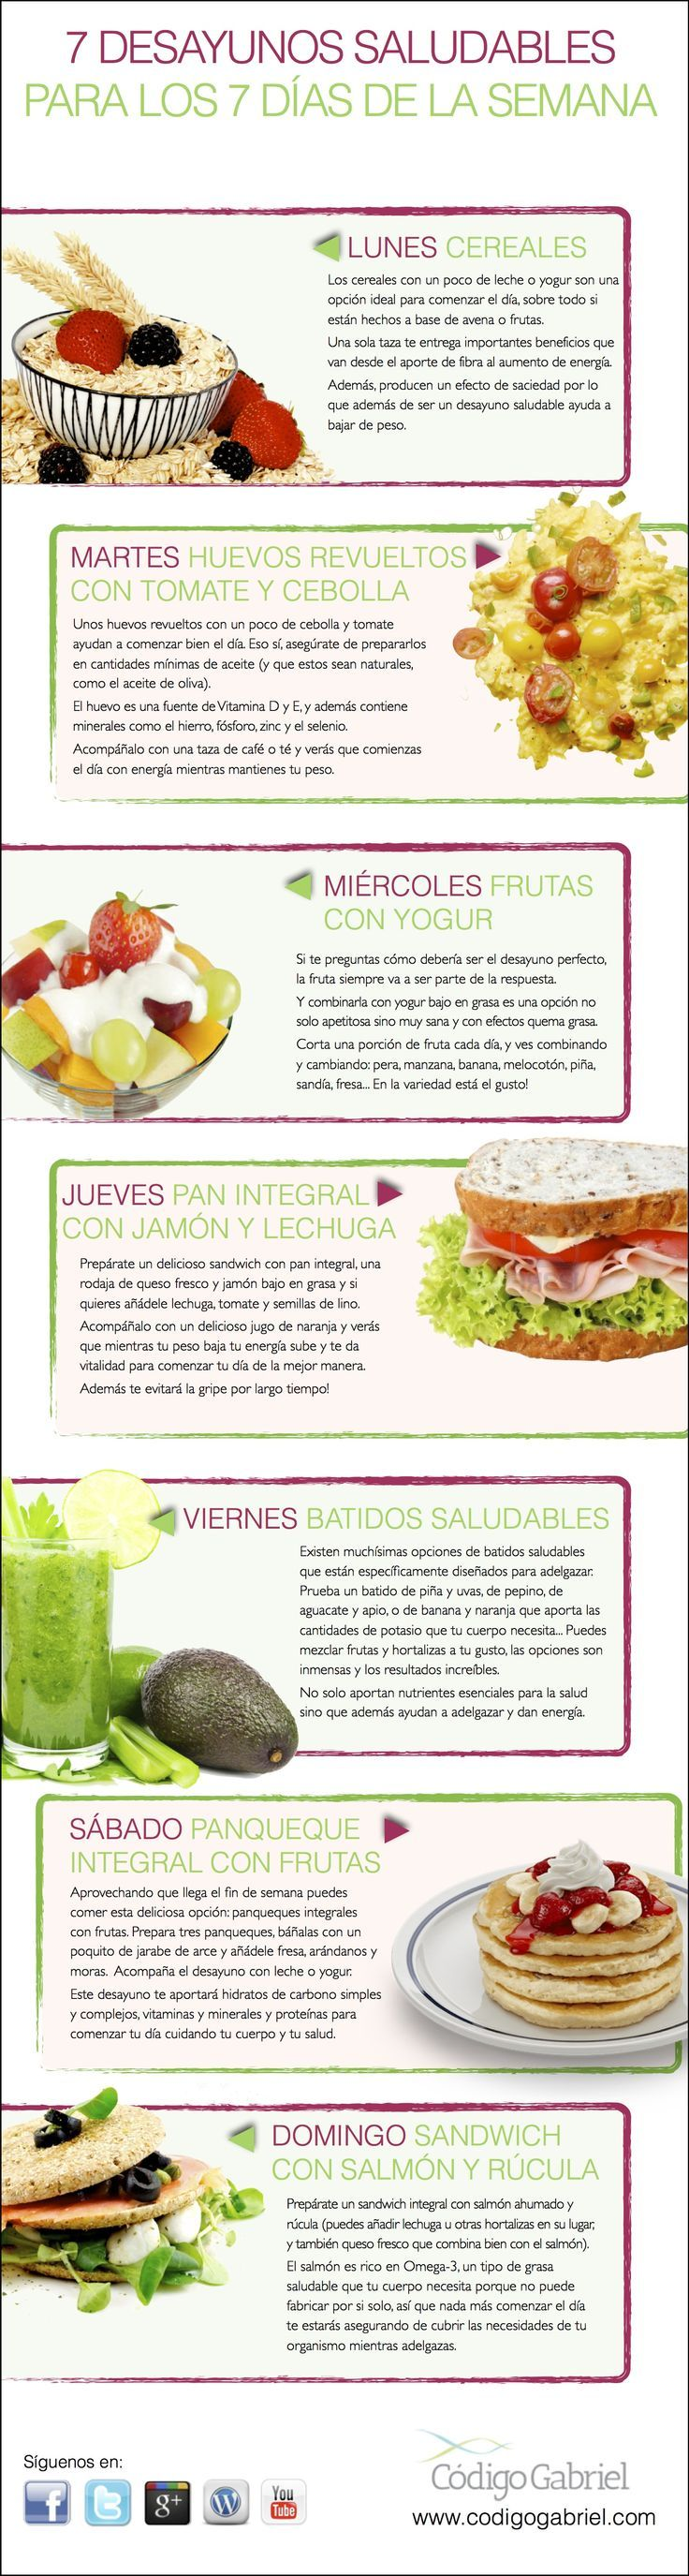 M s de 25 ideas incre bles sobre vida saludable en - Ideas de comidas sanas ...